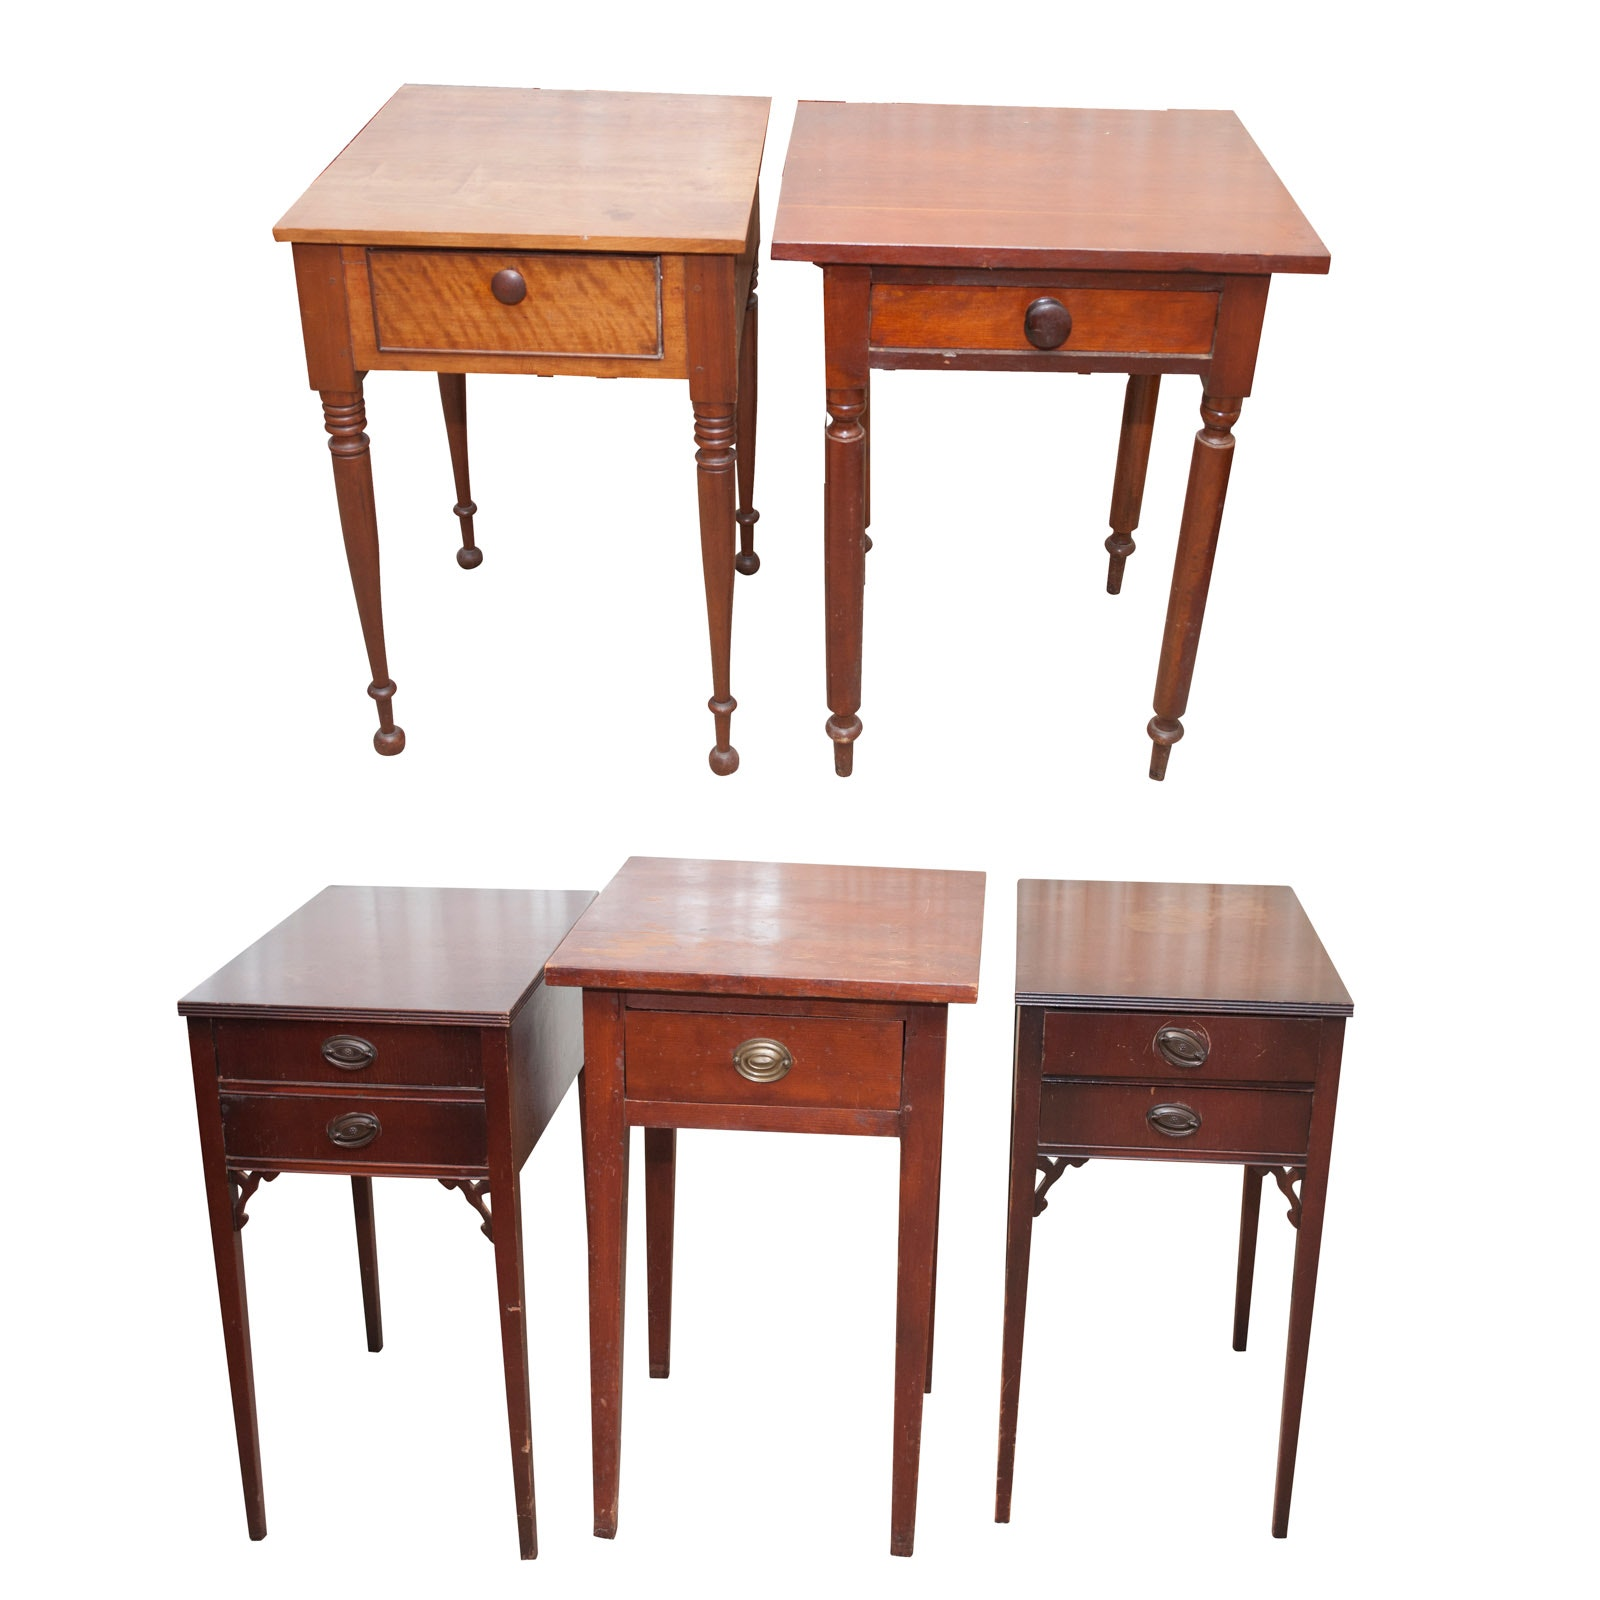 Vintage Project End Tables